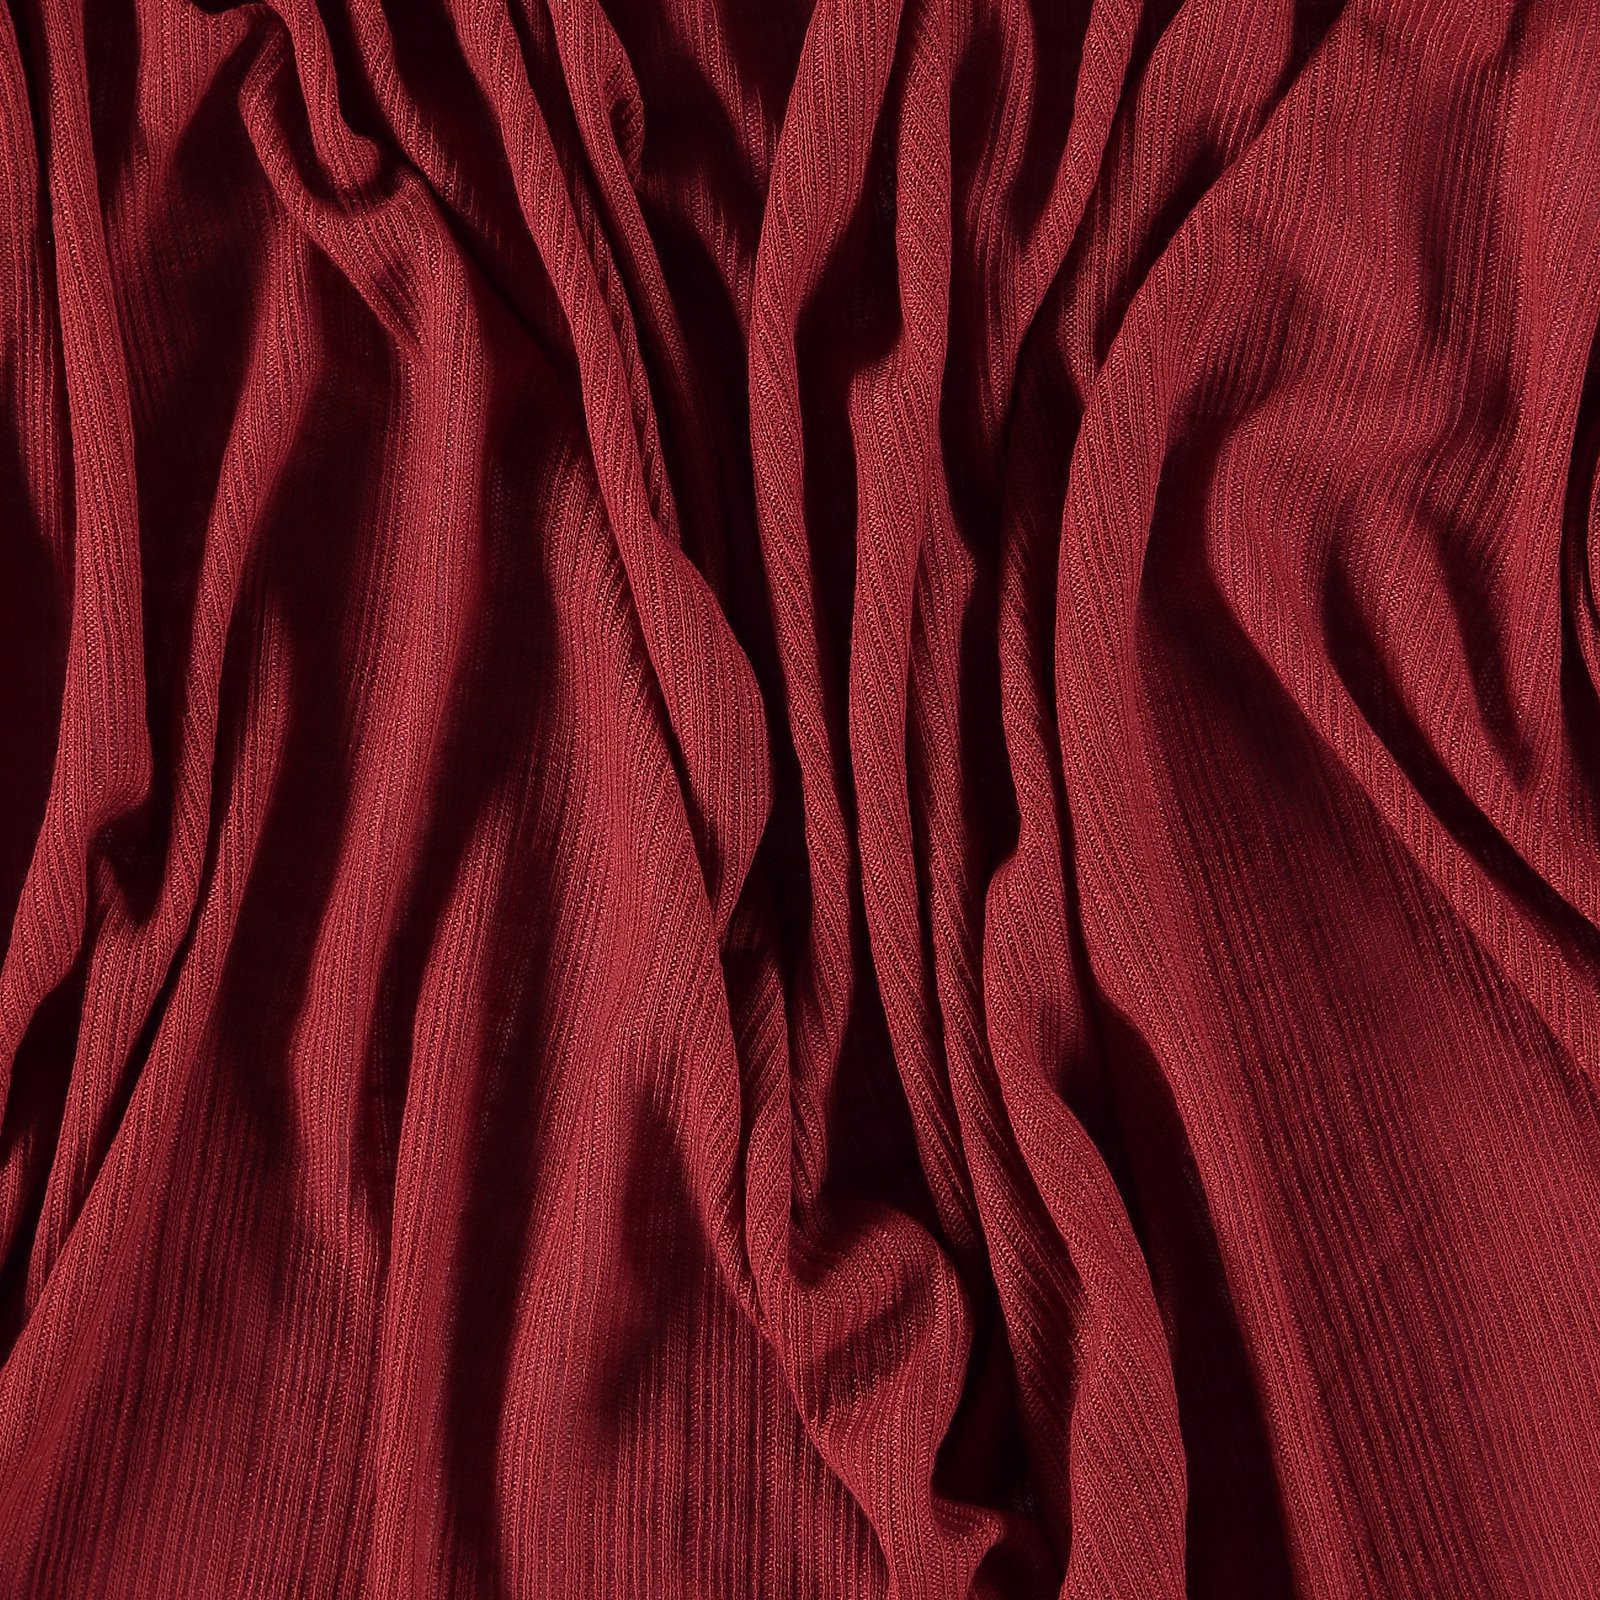 Light polyester knit red